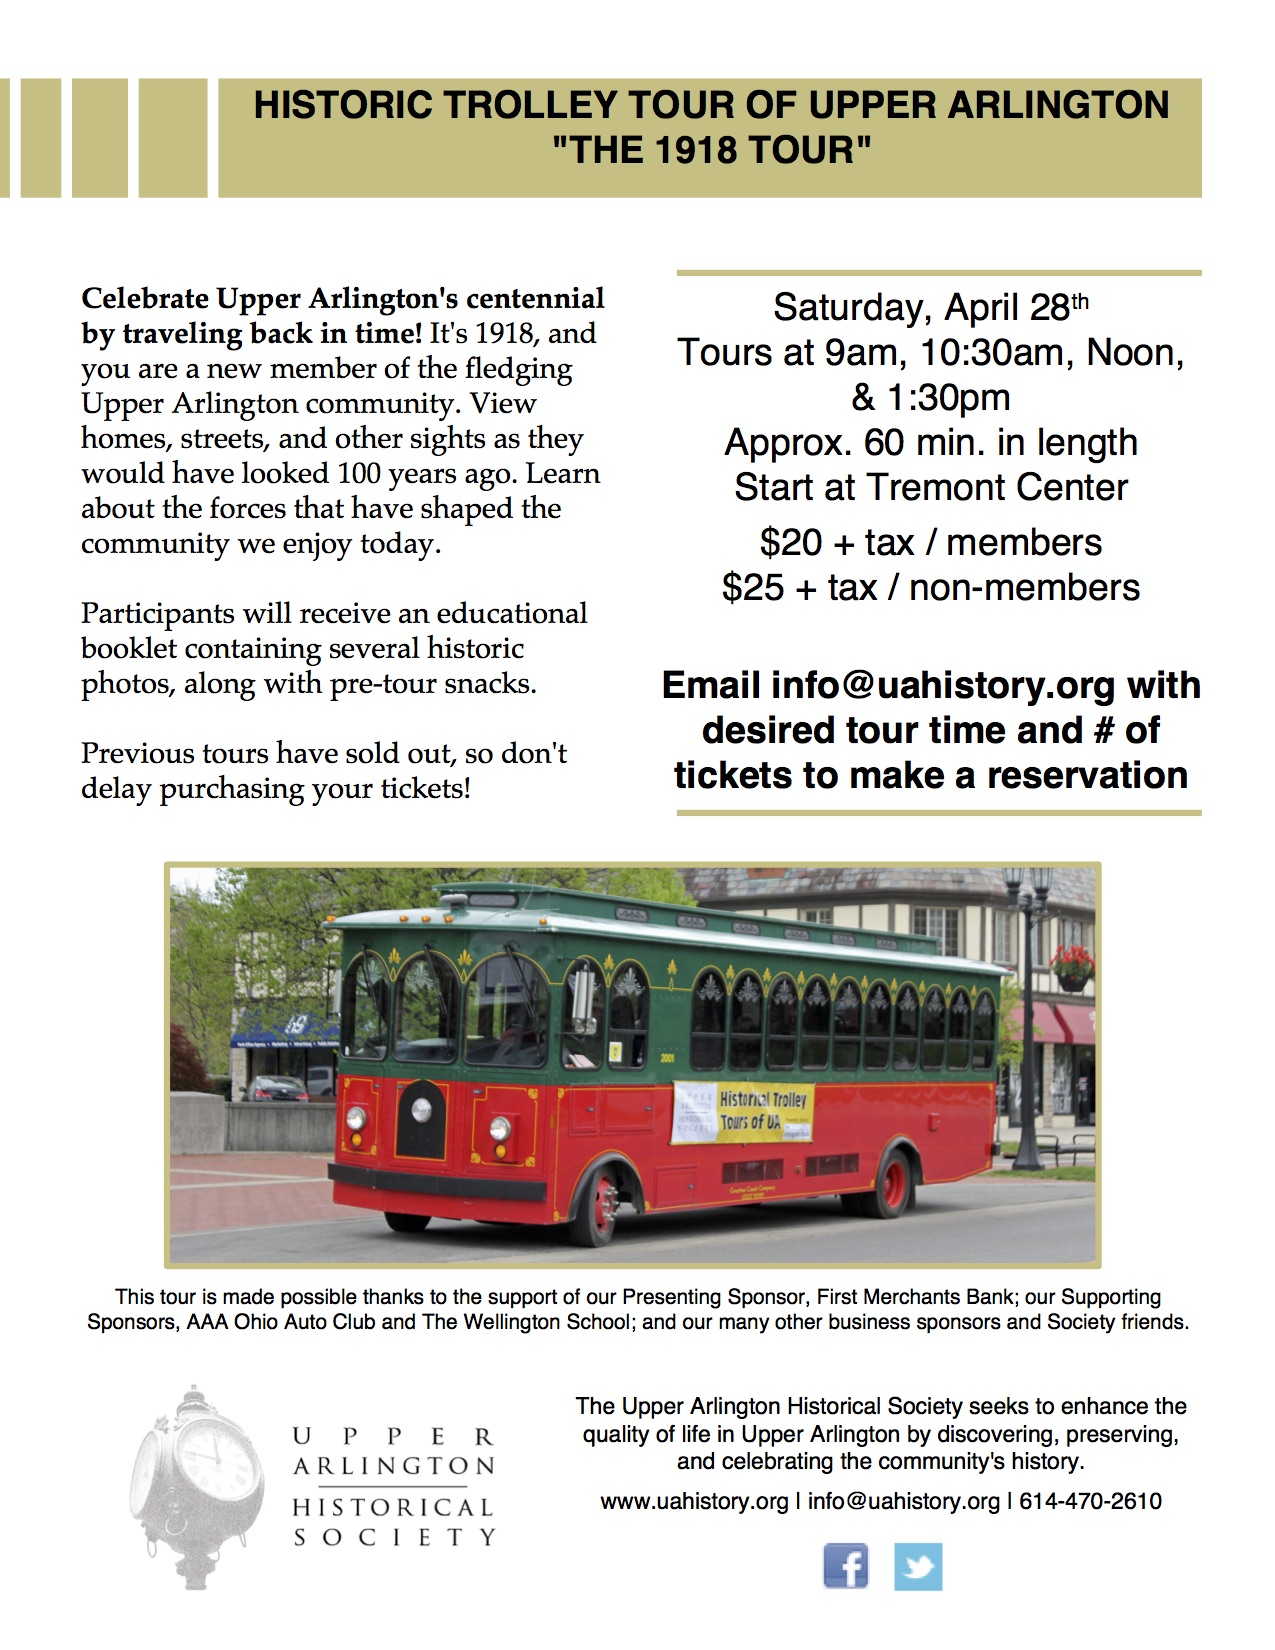 2018 apr 28 tour flyer trolley.jpg